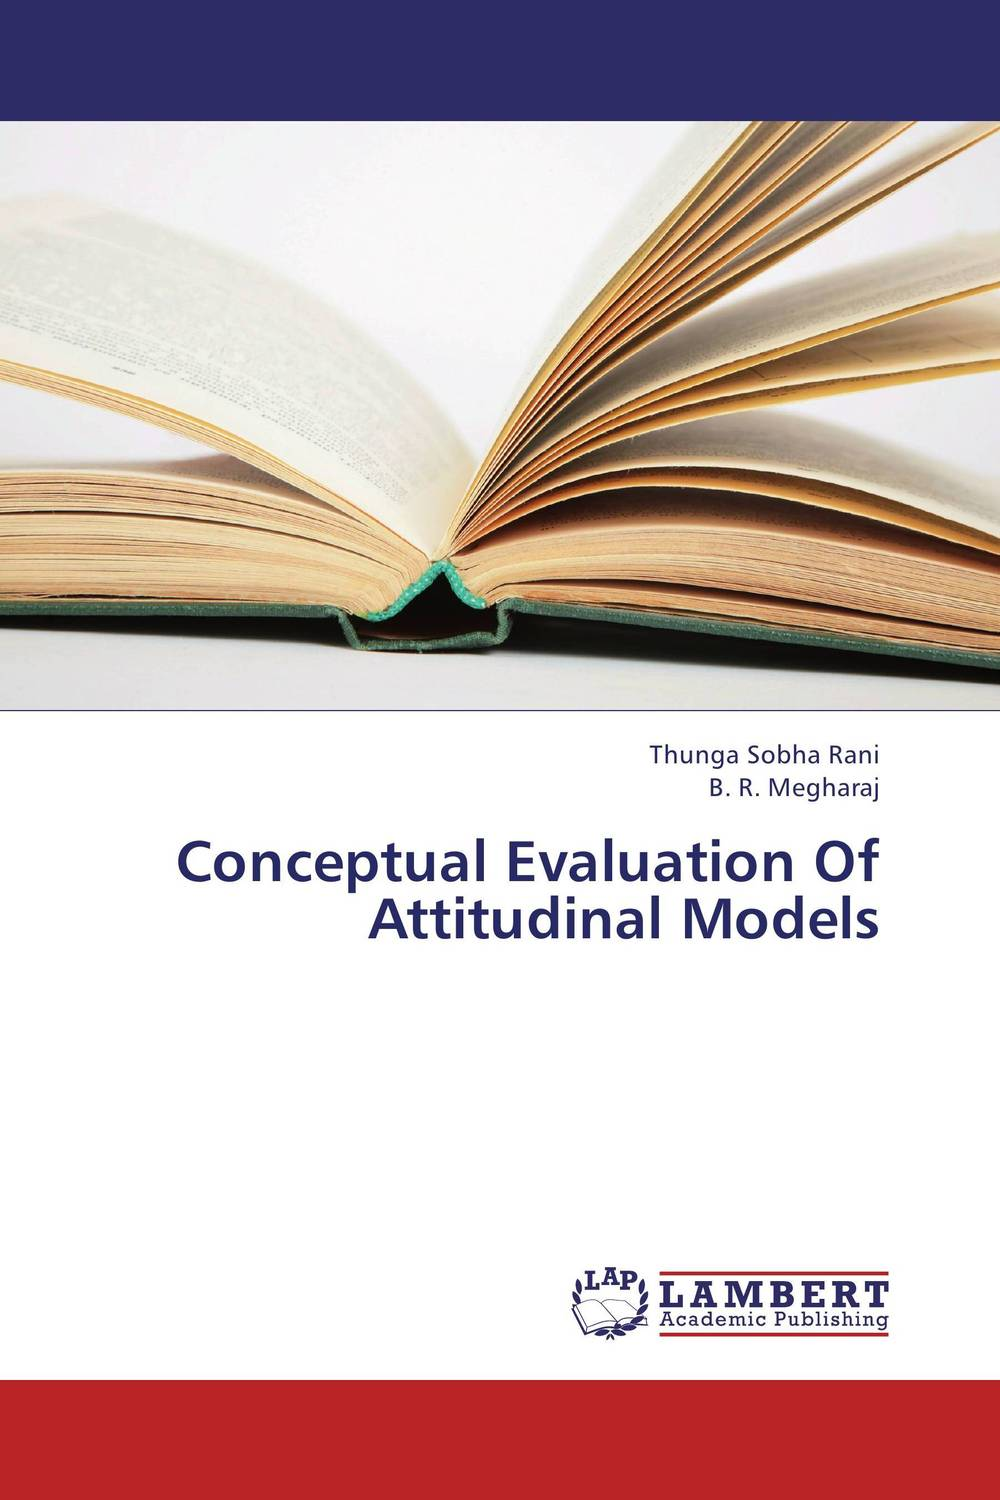 Conceptual Evaluation Of Attitudinal Models the role of evaluation as a mechanism for advancing principal practice